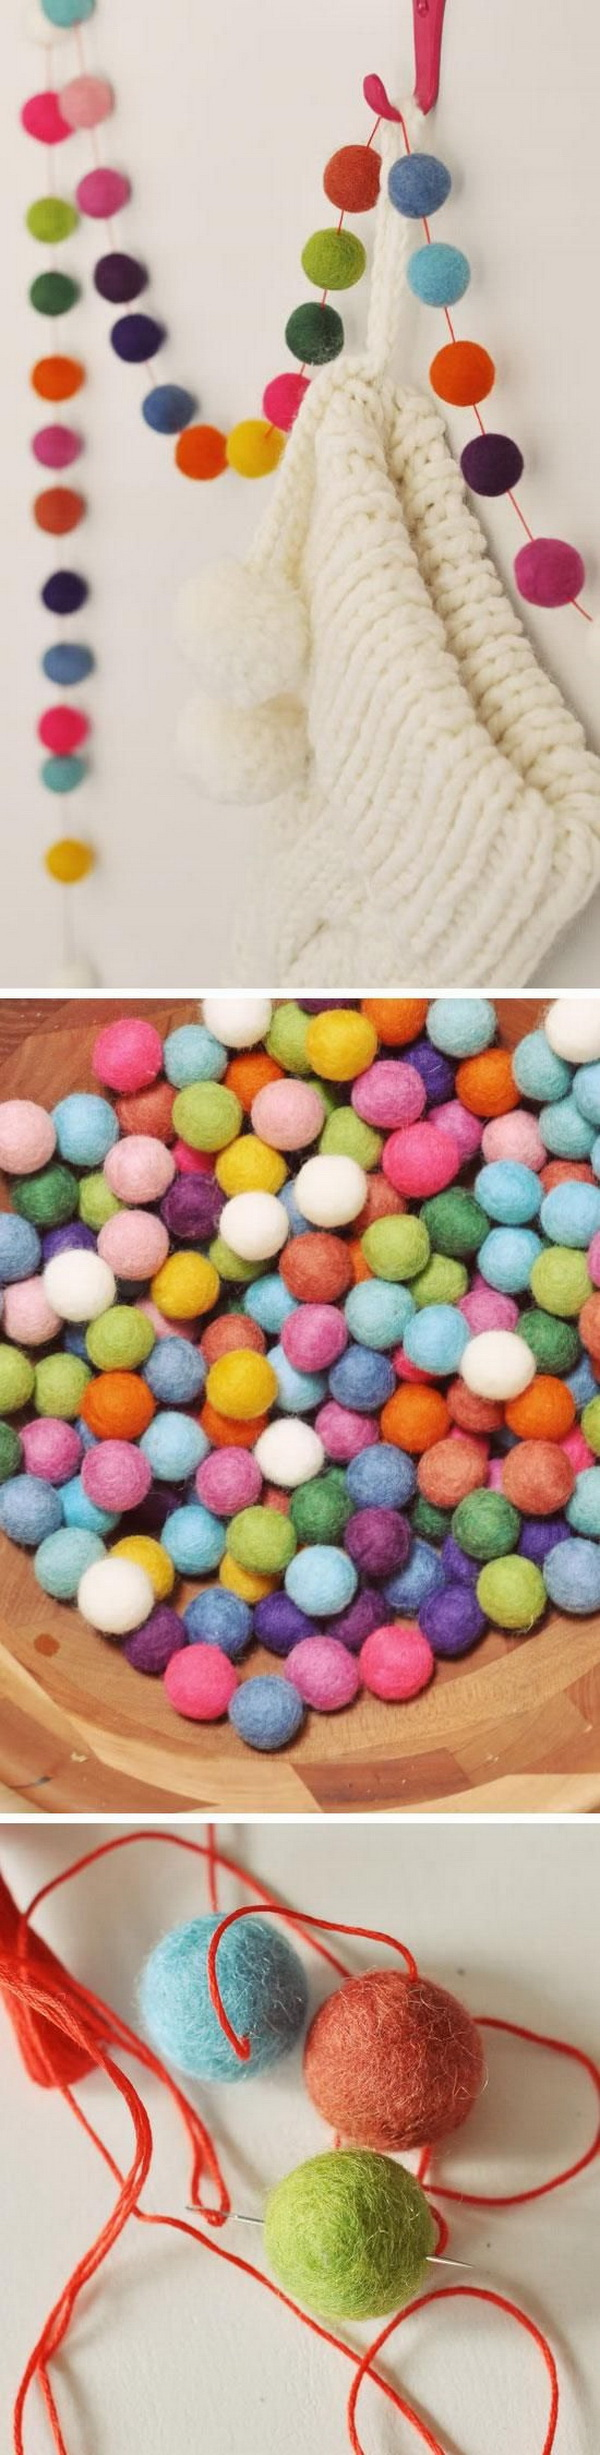 Felt Ball Garland for Christmas. DIY colorful garland made with little felt balls! Great for teen girls' bedroom decoration for ths holiday!